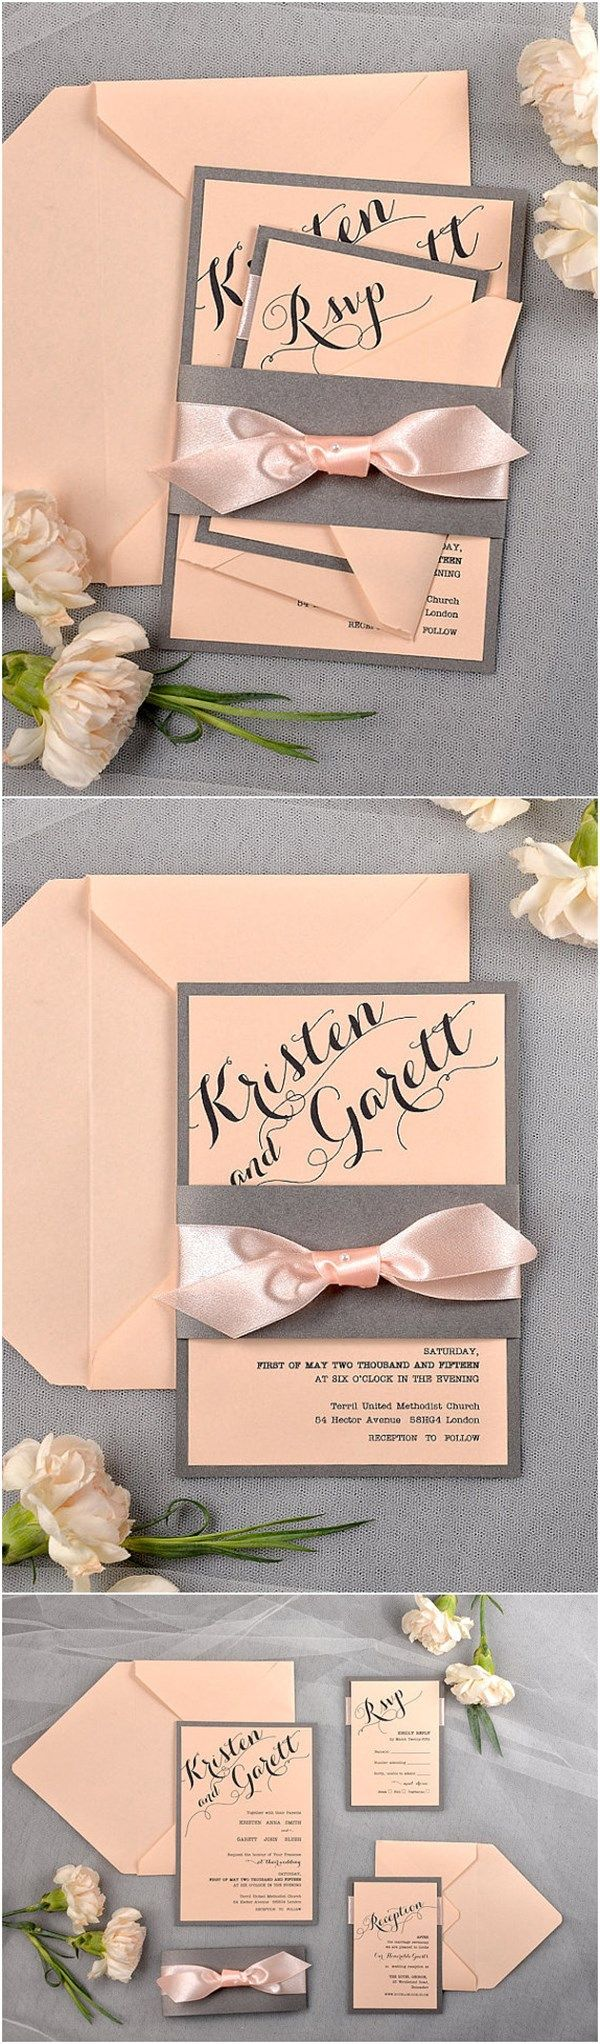 Calligraphy Vintage Grey and Peach Wedding Invitation Ideas - Deer Pearl Flowers